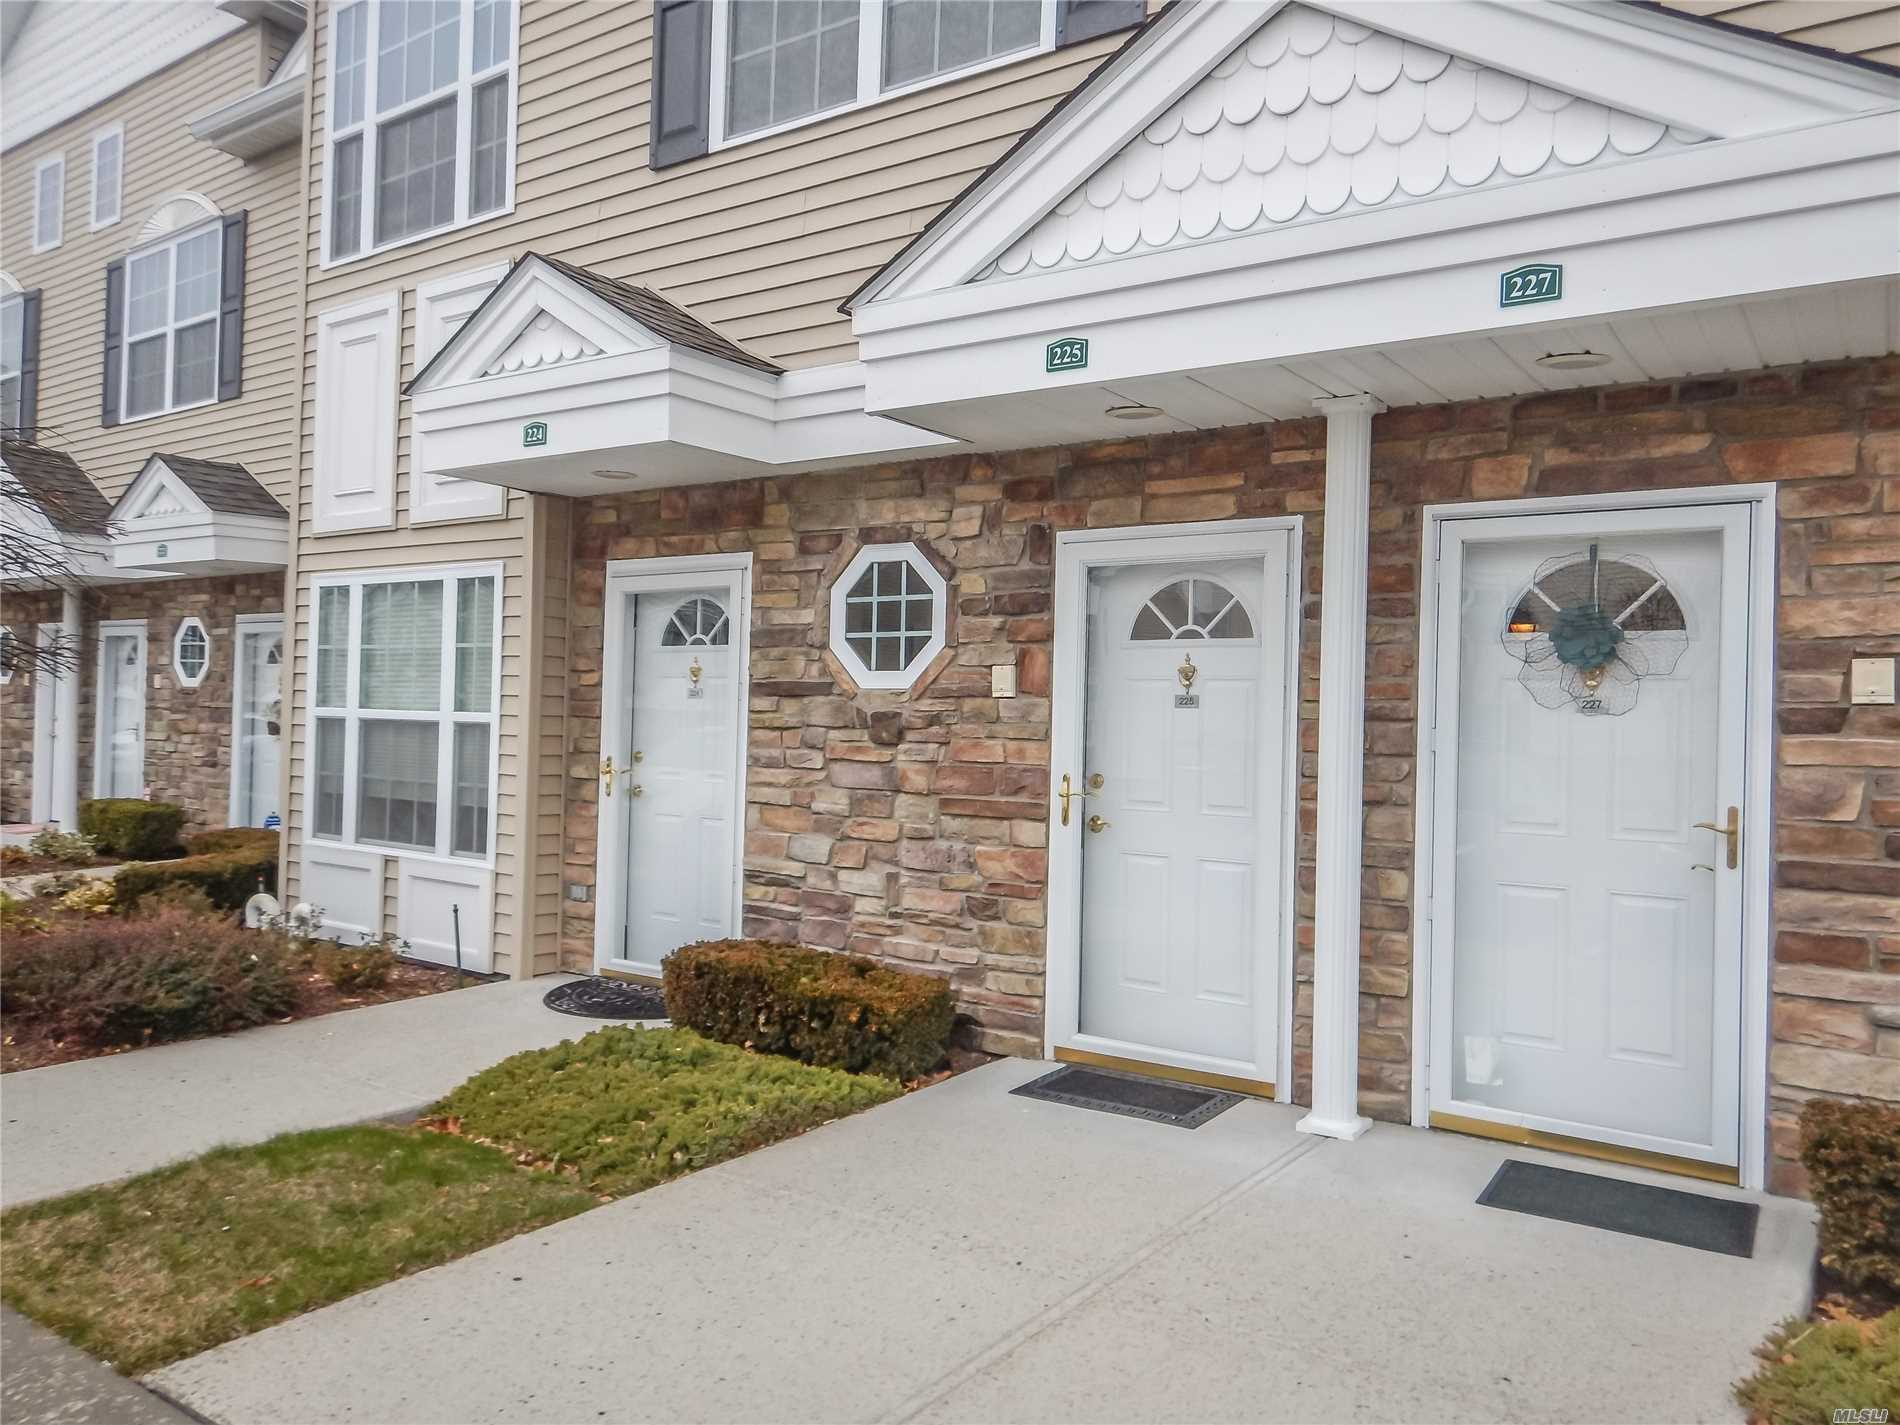 225 Spring Dr - East Meadow, New York